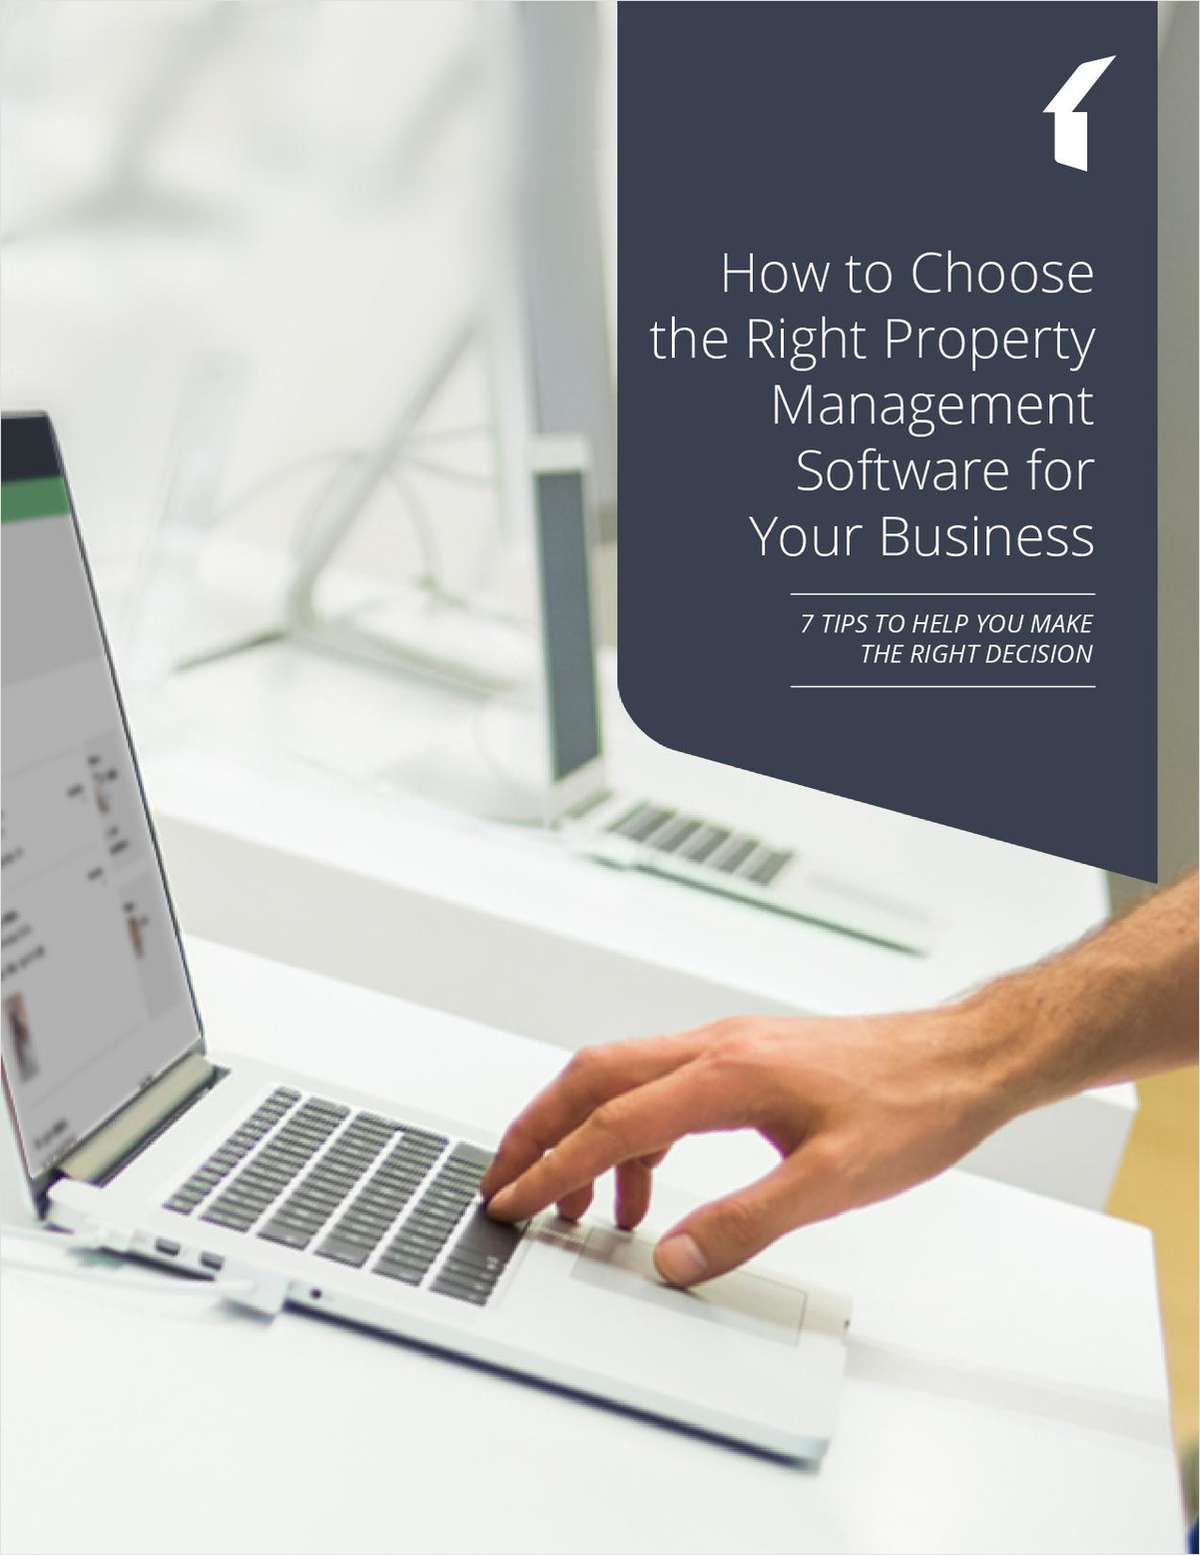 How to Choose the Right Property Management Software for Your Business